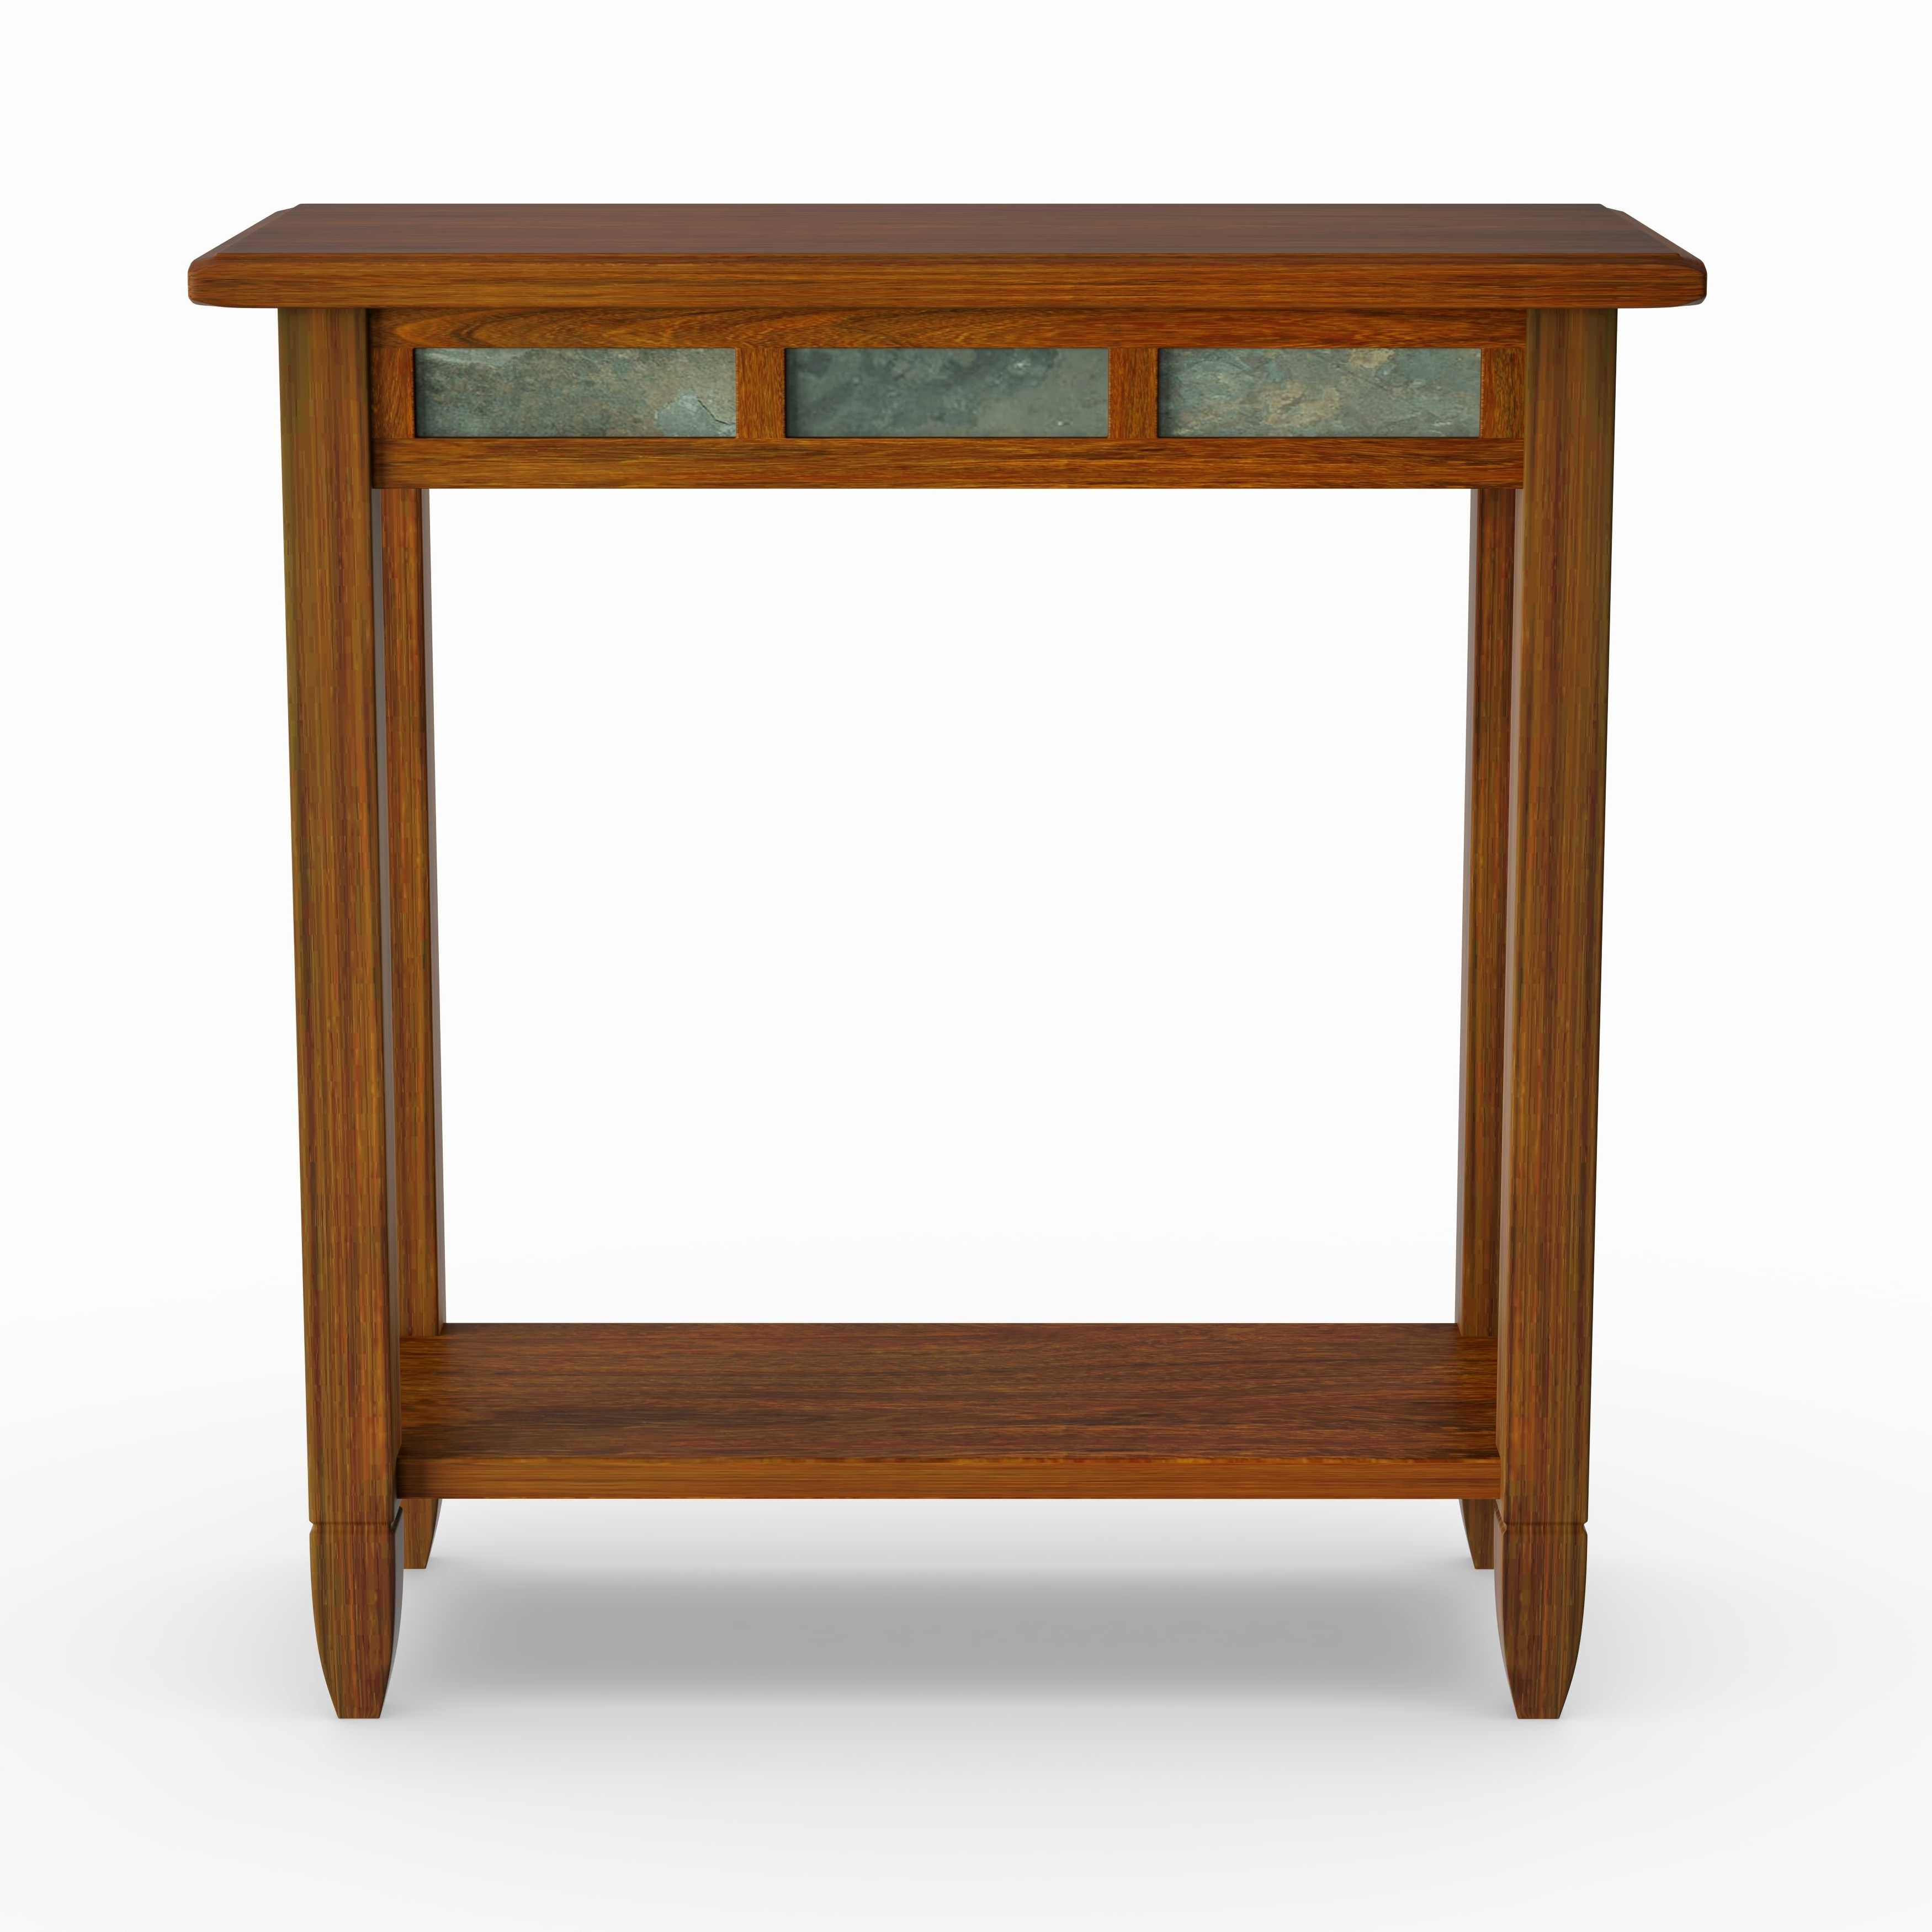 Popular Copper Grove Ixia Rustic Oak And Slate Tile Coffee Tables Pertaining To Copper Grove Ixia Rustic Oak And Slate Tile Chairside Table (View 2 of 20)